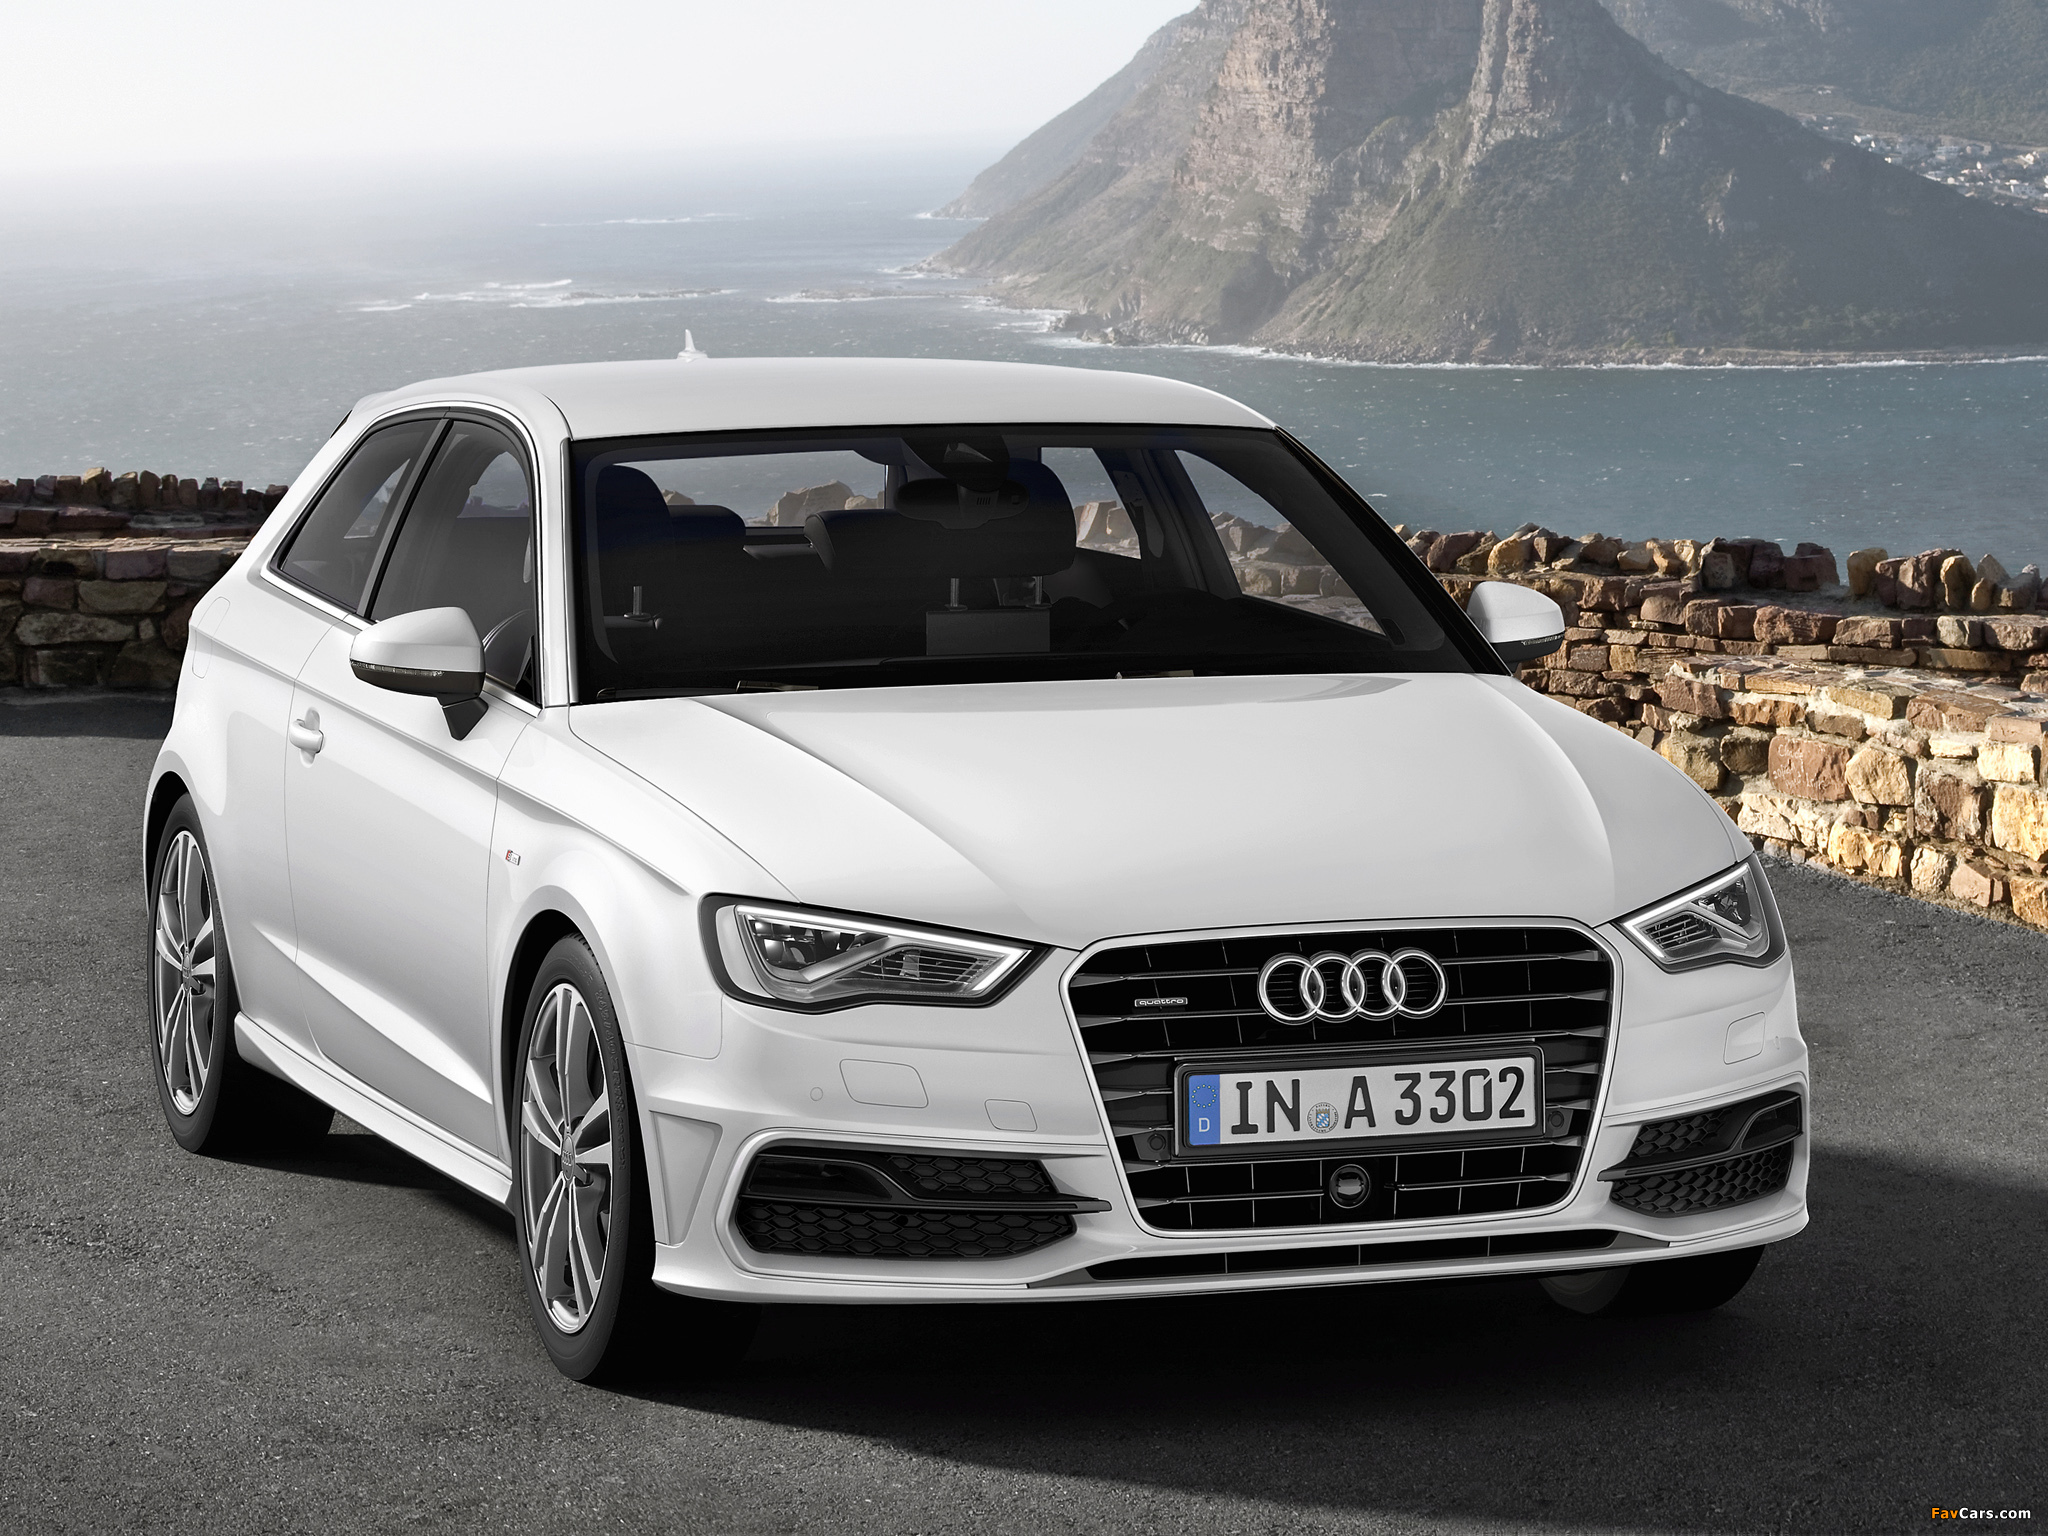 Audi a3 1 8t s line quattro 8v 2012 wallpapers